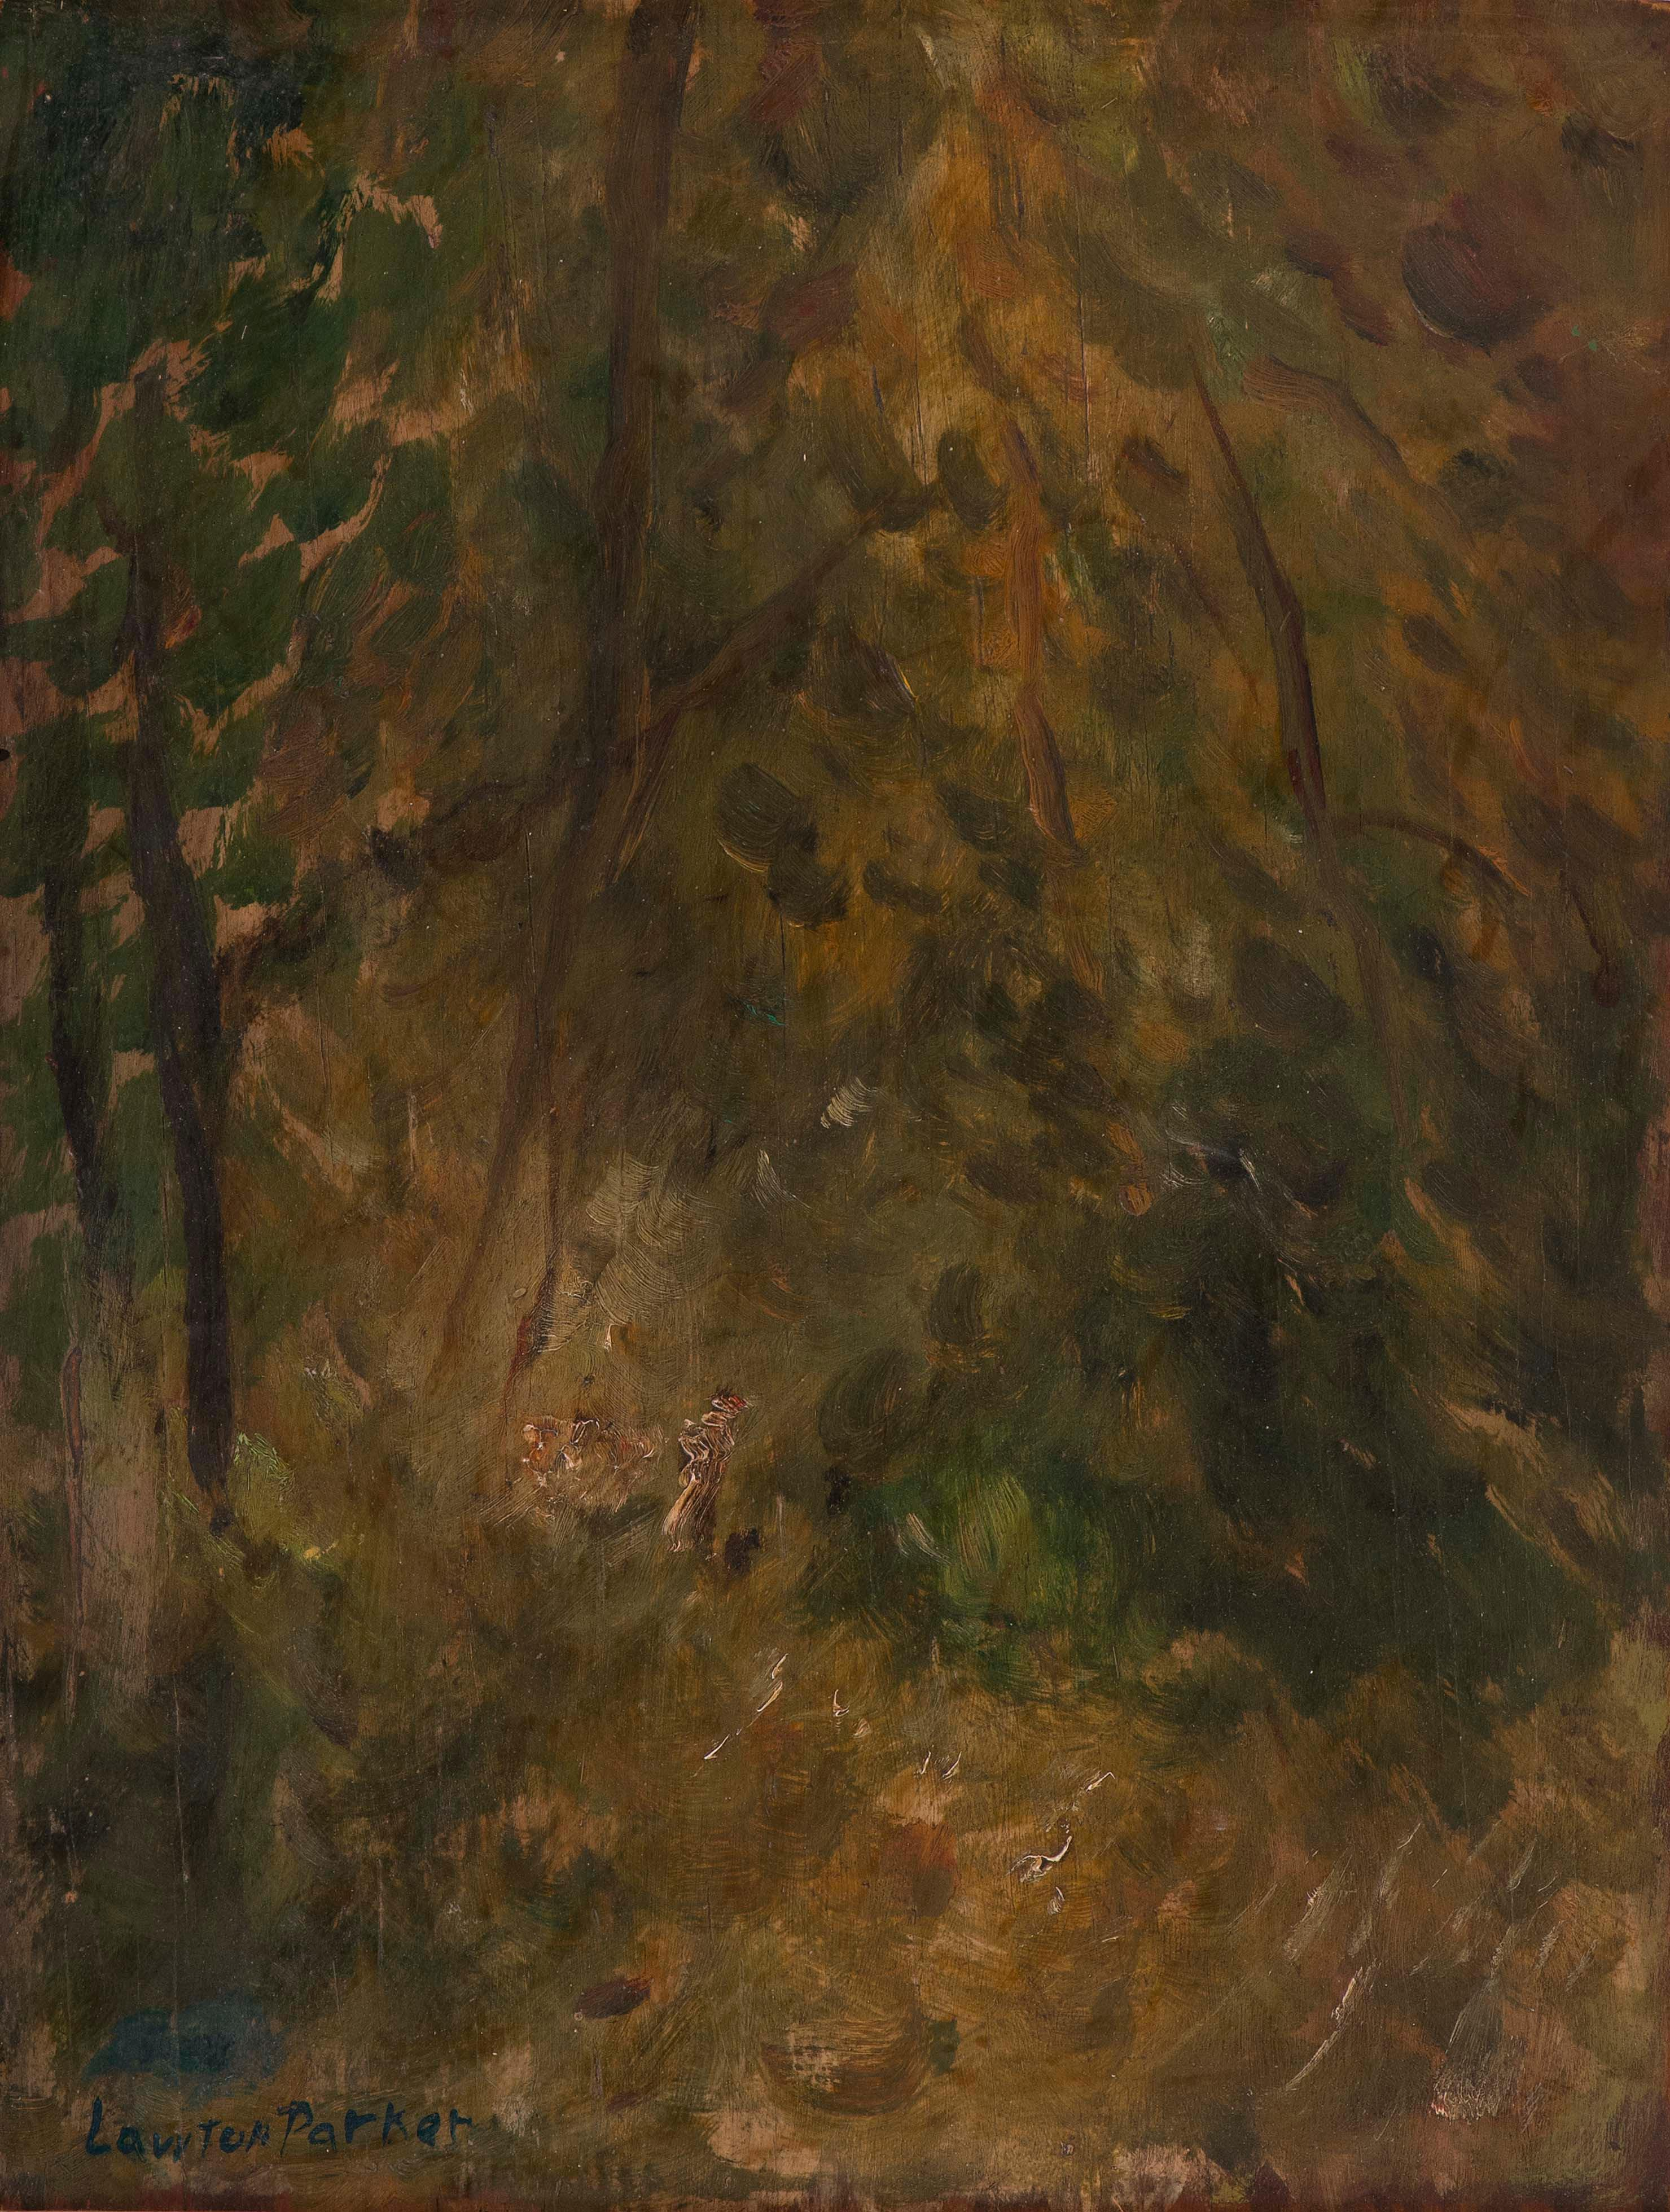 """LAWTON SILAS PARKER, United States, 1868-1954, Forest interior., Oil on board, 15"""" x 12"""". Framed 17"""" x 19""""."""